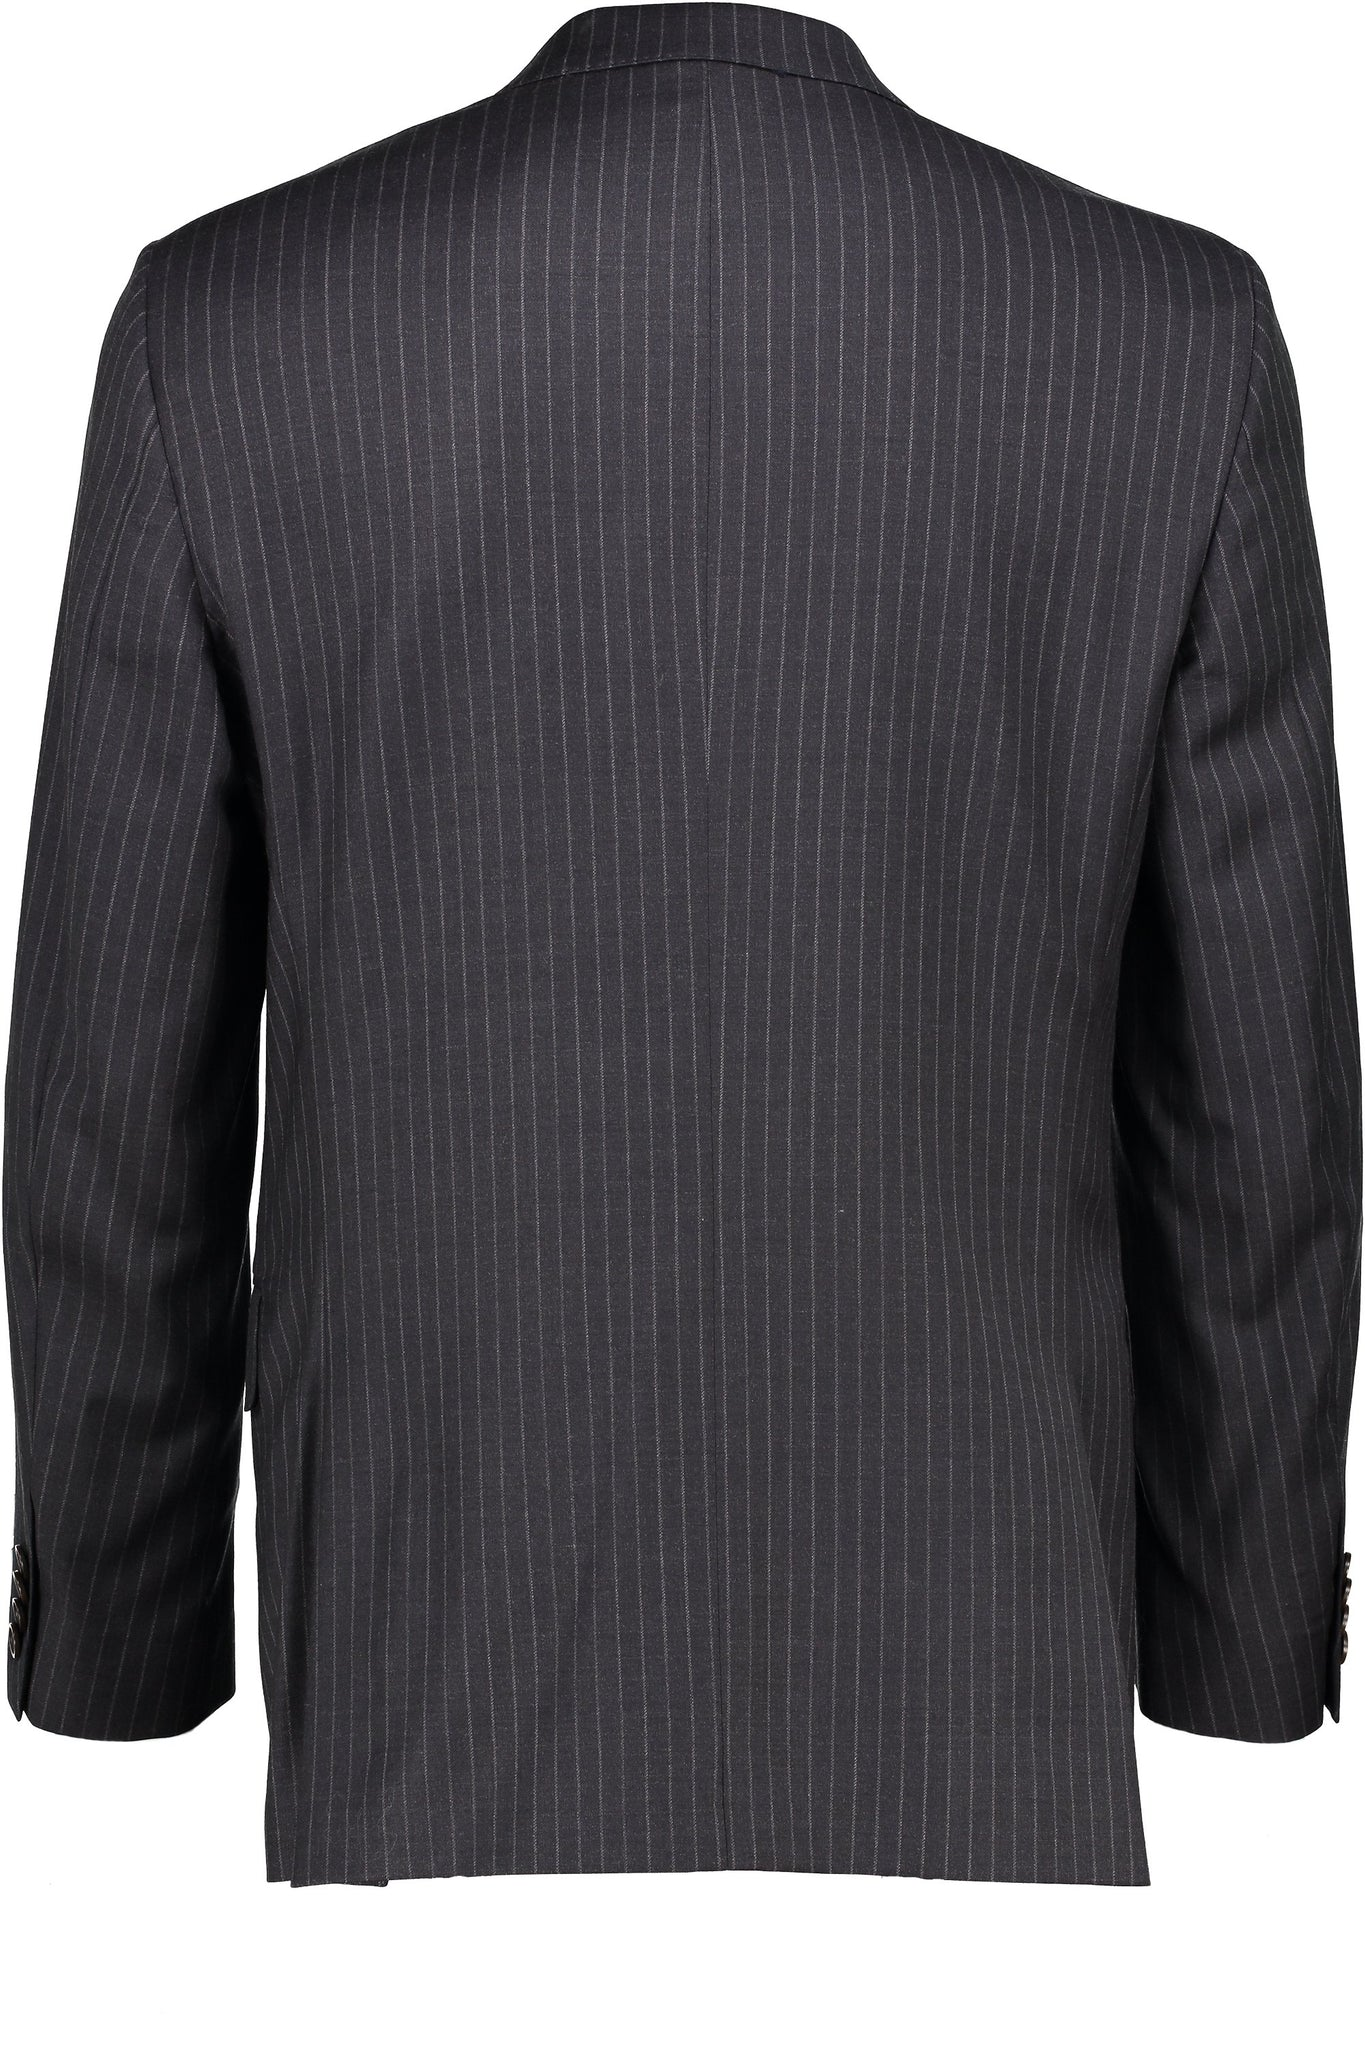 Modern Fit Charcoal Pinstripe H-Tech Performance Wool Suit -  Hardwick.com